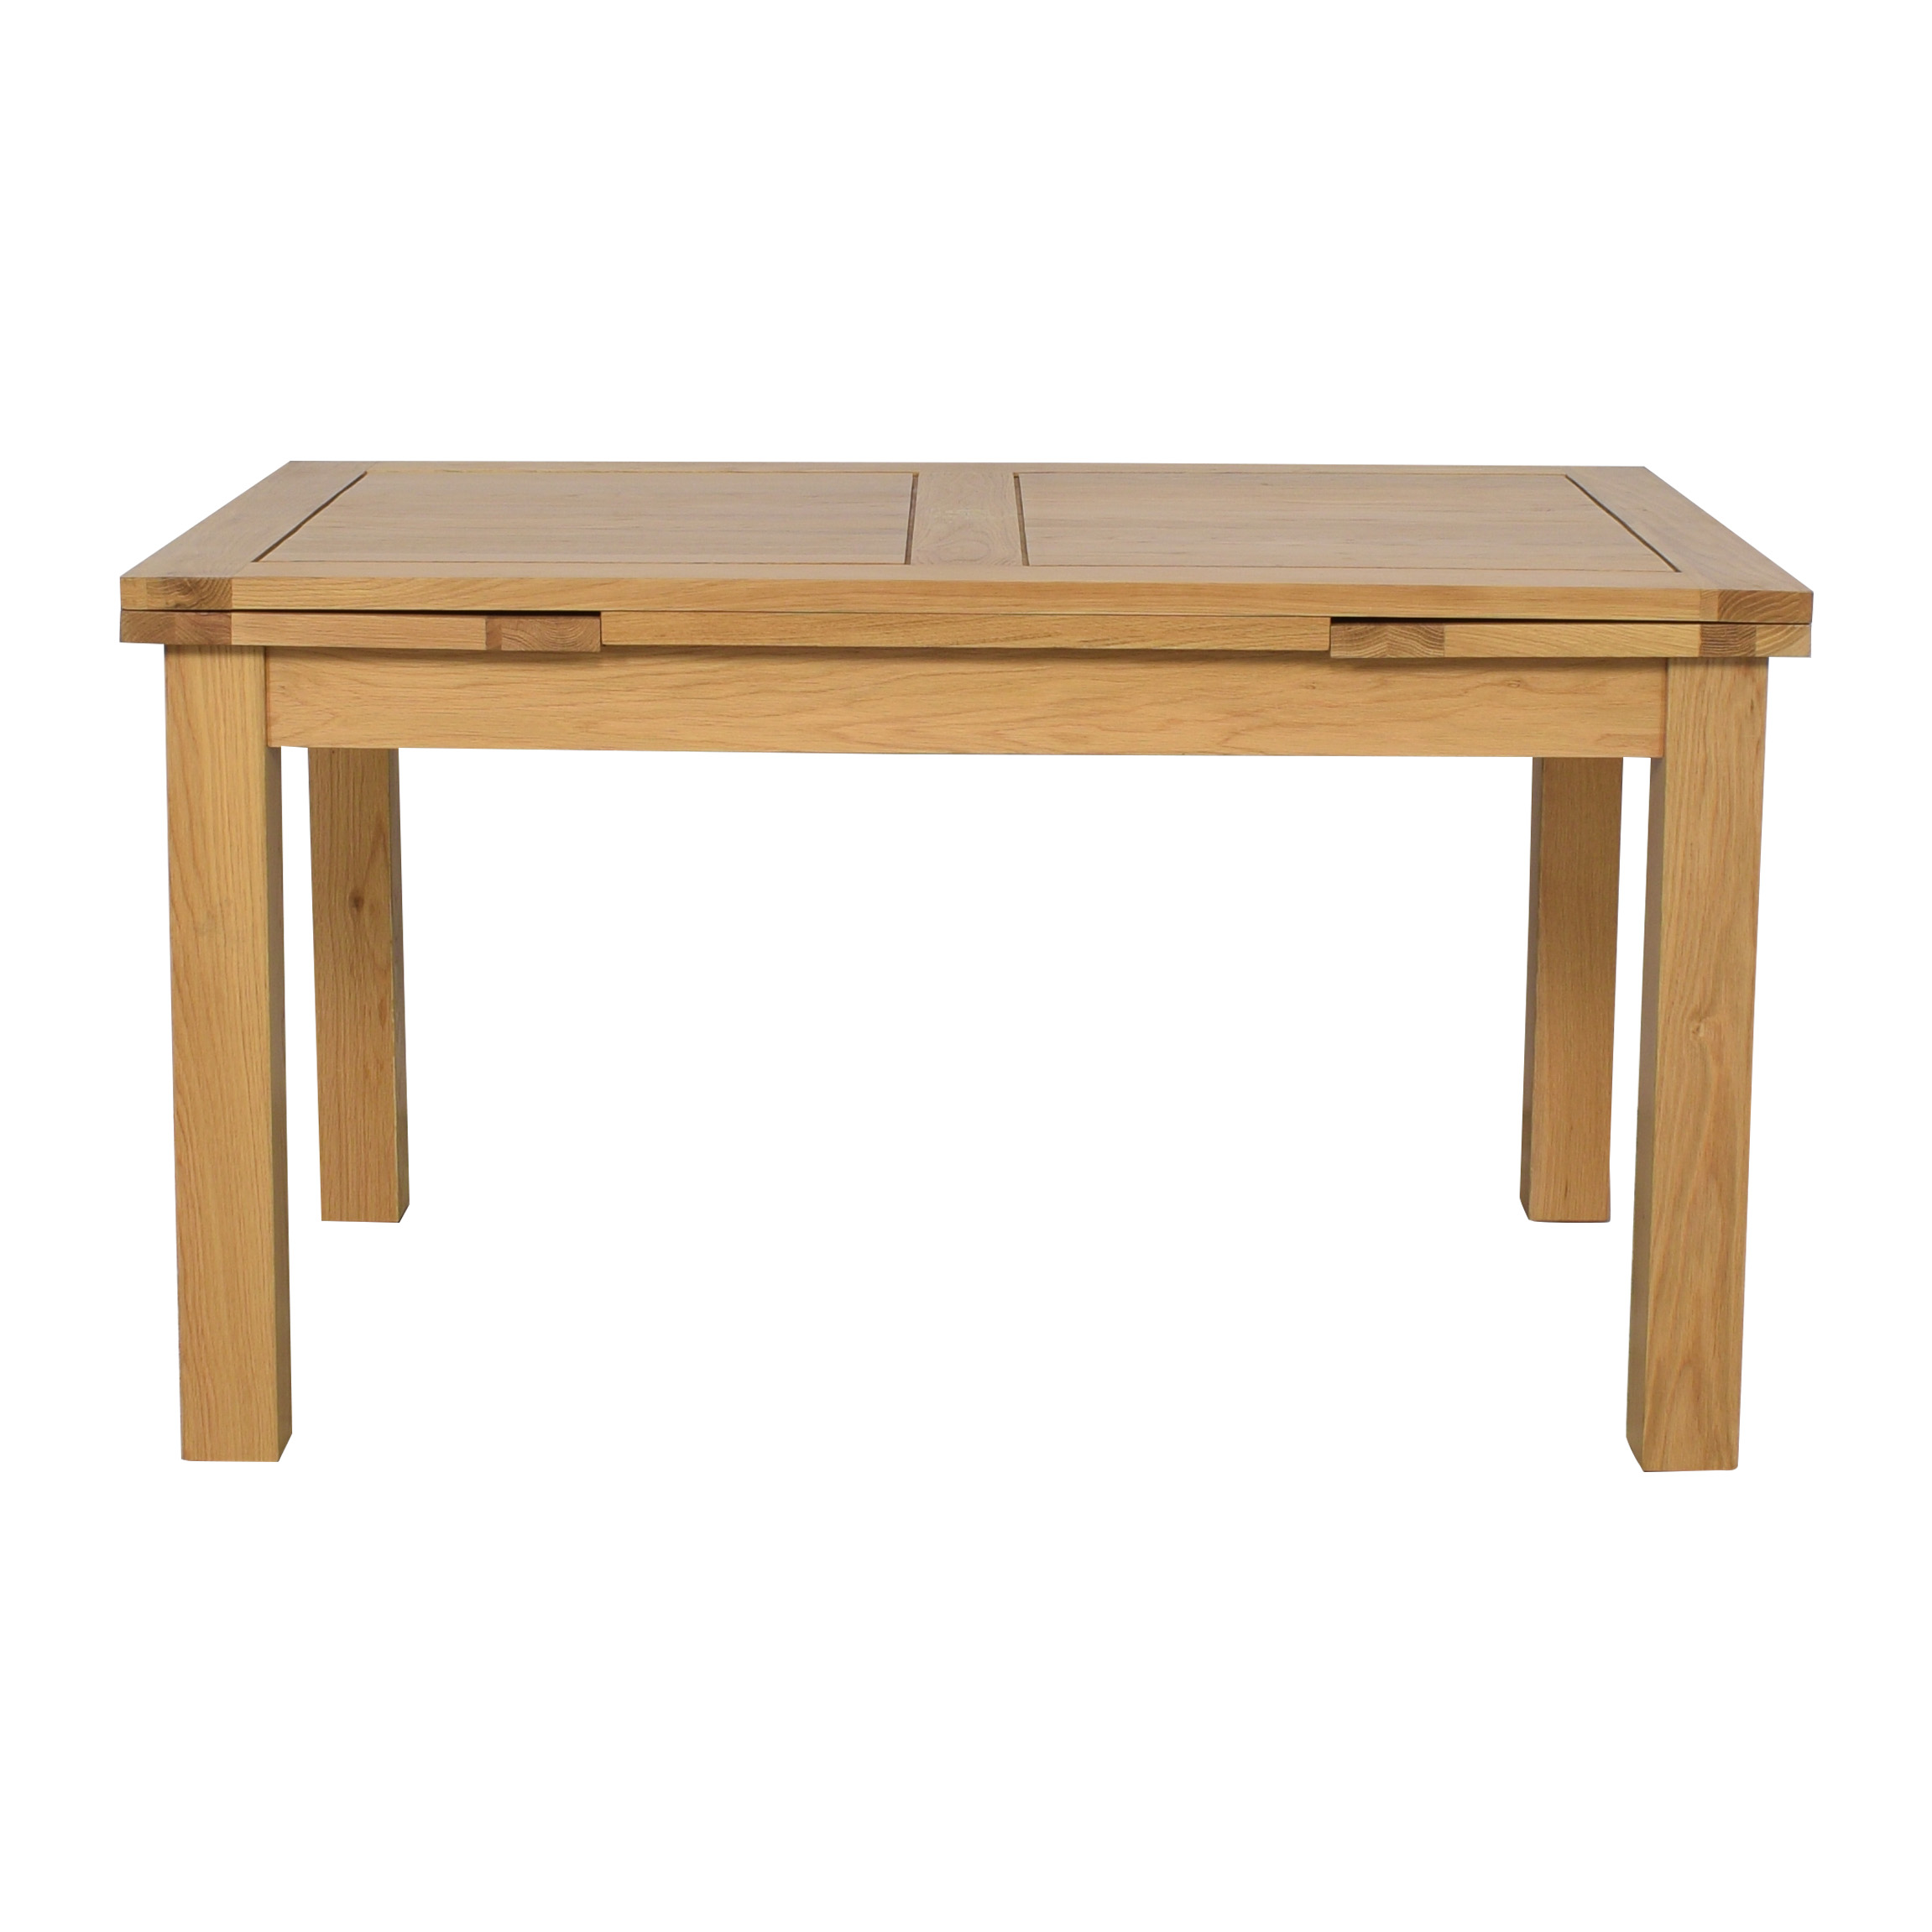 Rustic Expandable Dining Table coupon